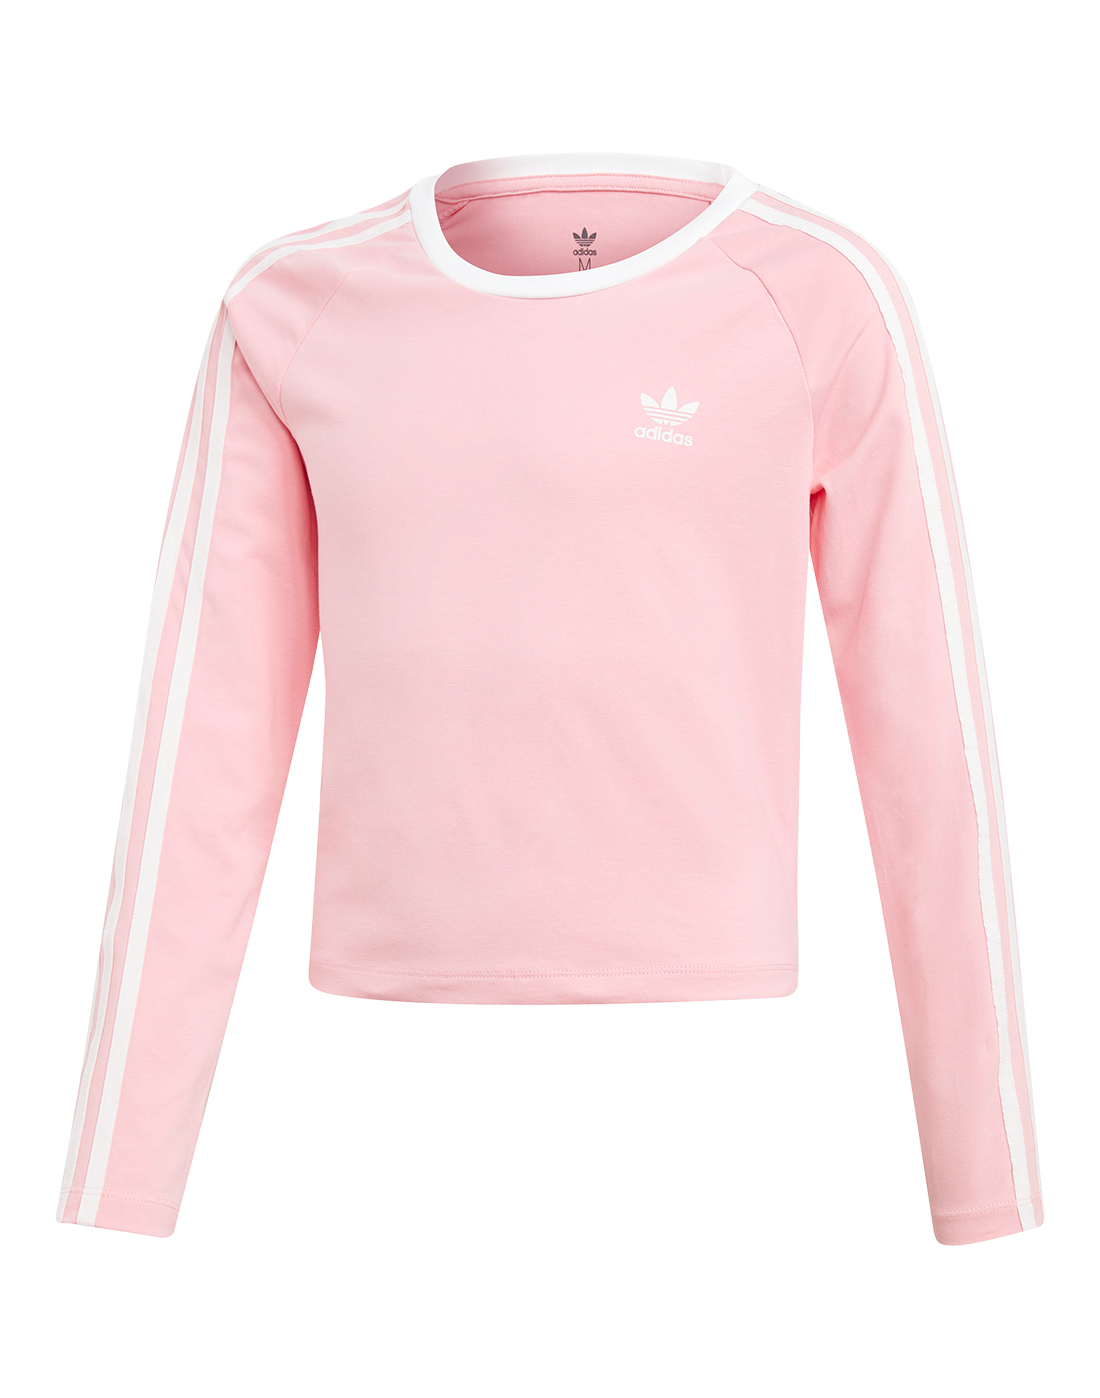 a6dbc182d8a1 Girl's Pink adidas Originals Cropped T-Shirt | Life Style Sports